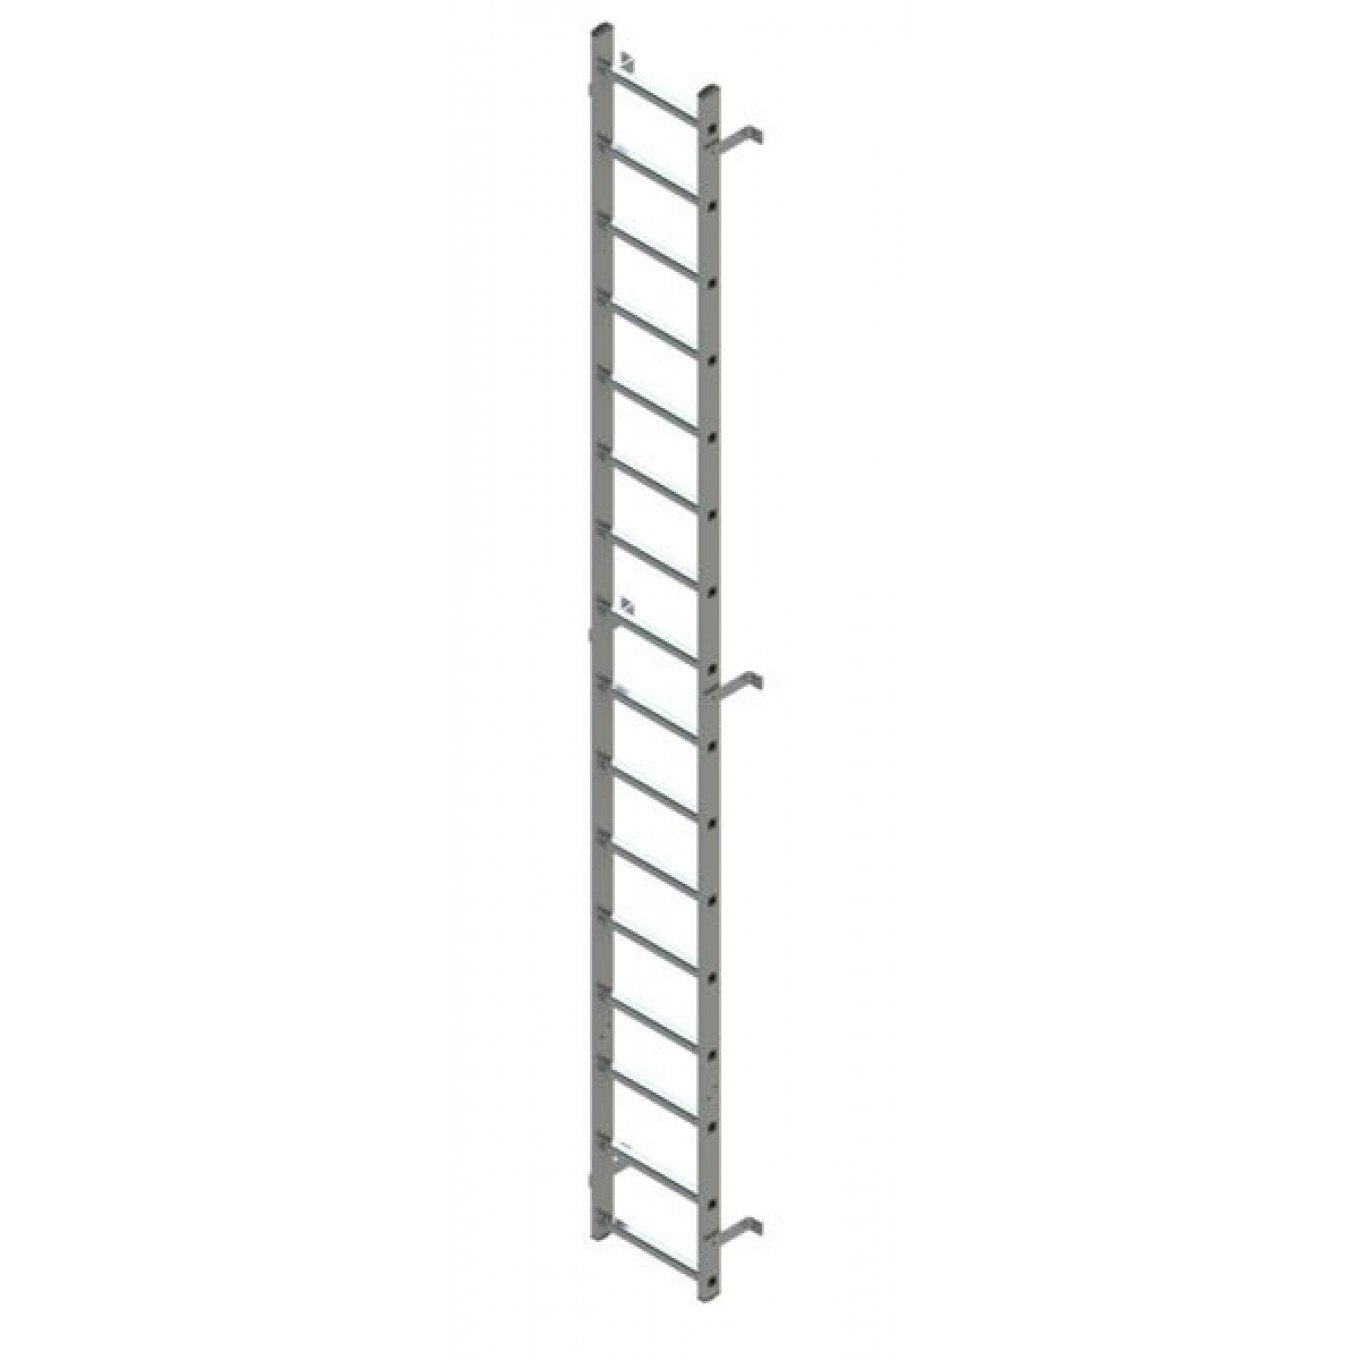 Vertical Access Fixed Ladder Description Specifications